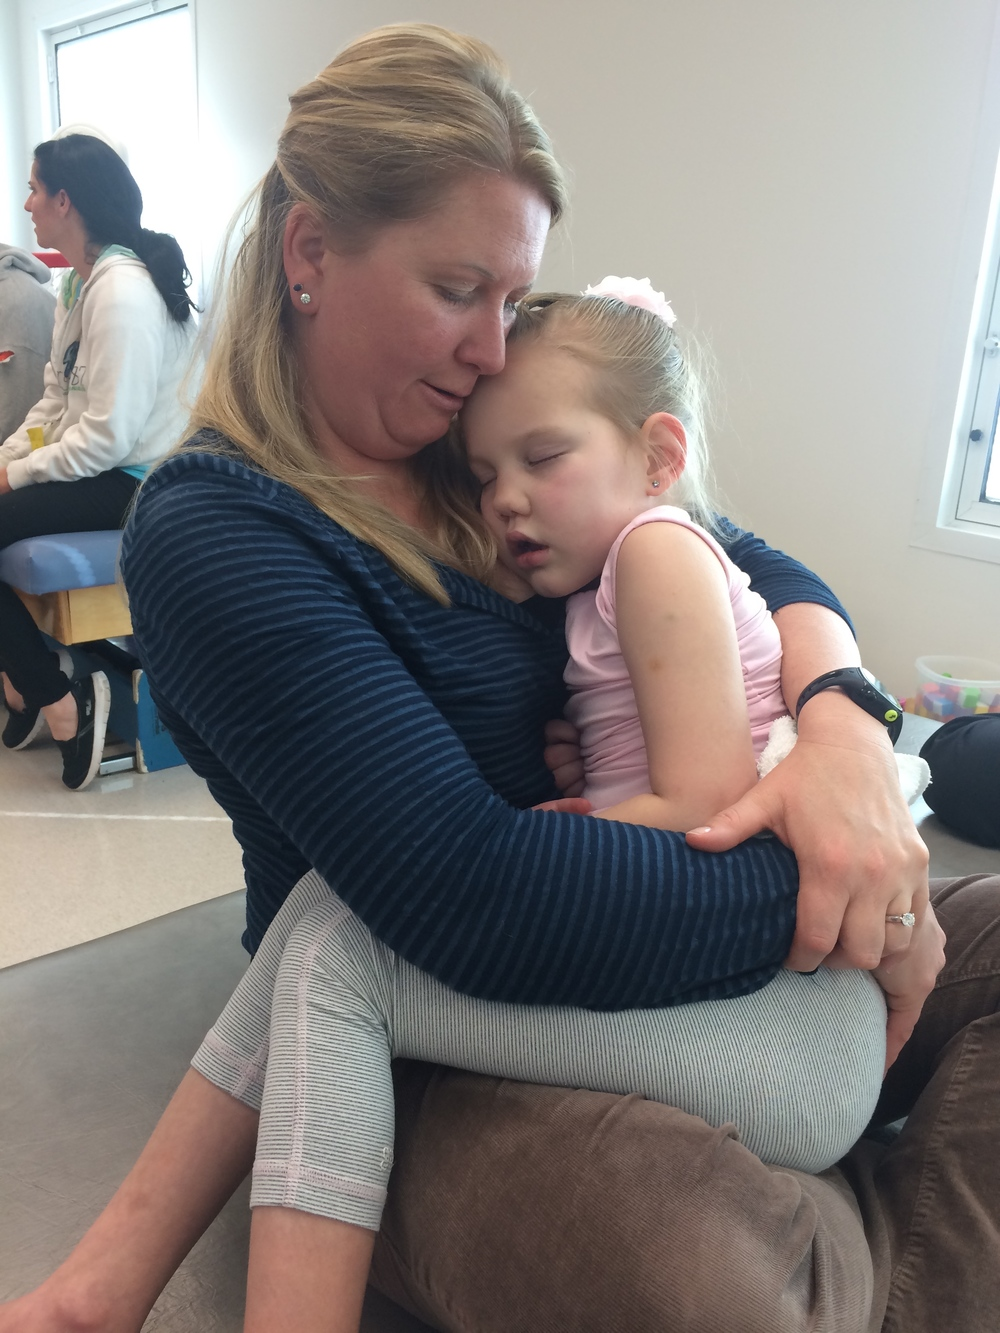 Tara was Kycie's Occupational Therapist.  She had to give Kycie an early goodbye as she was not working the day Kycie was discharged.  Every therapist loved Kycie like their own and it was an emotional goodbye.